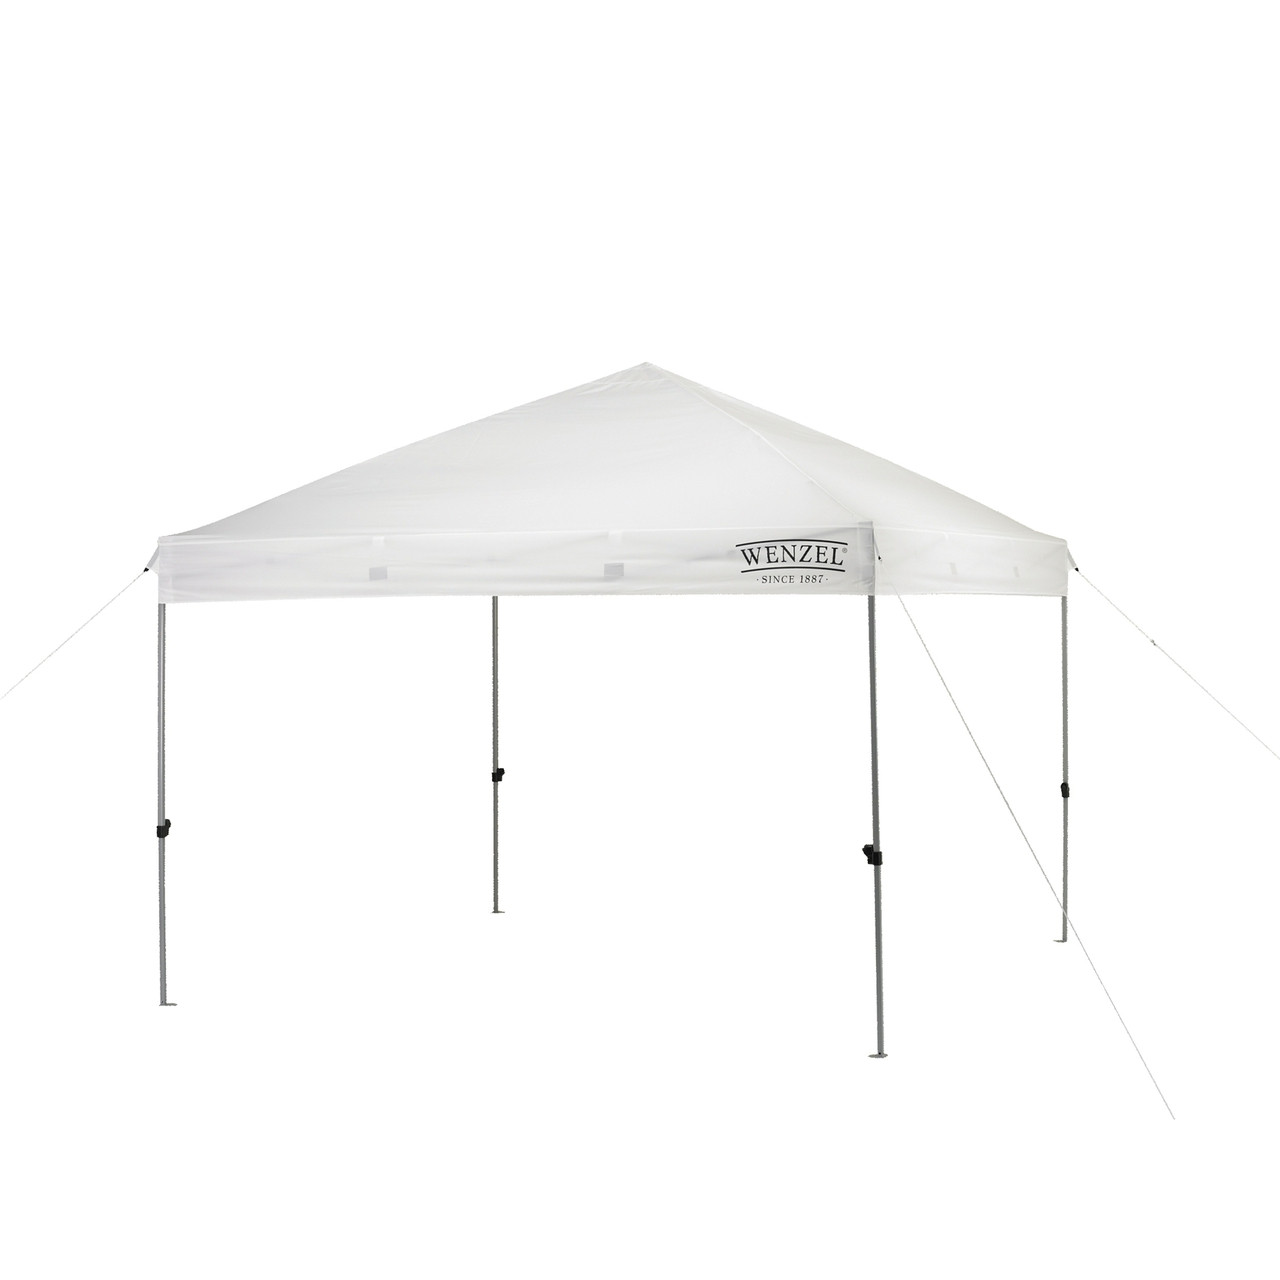 Wenzel Smartshade Canopy 10'x10', white, setup with the guy lines extended